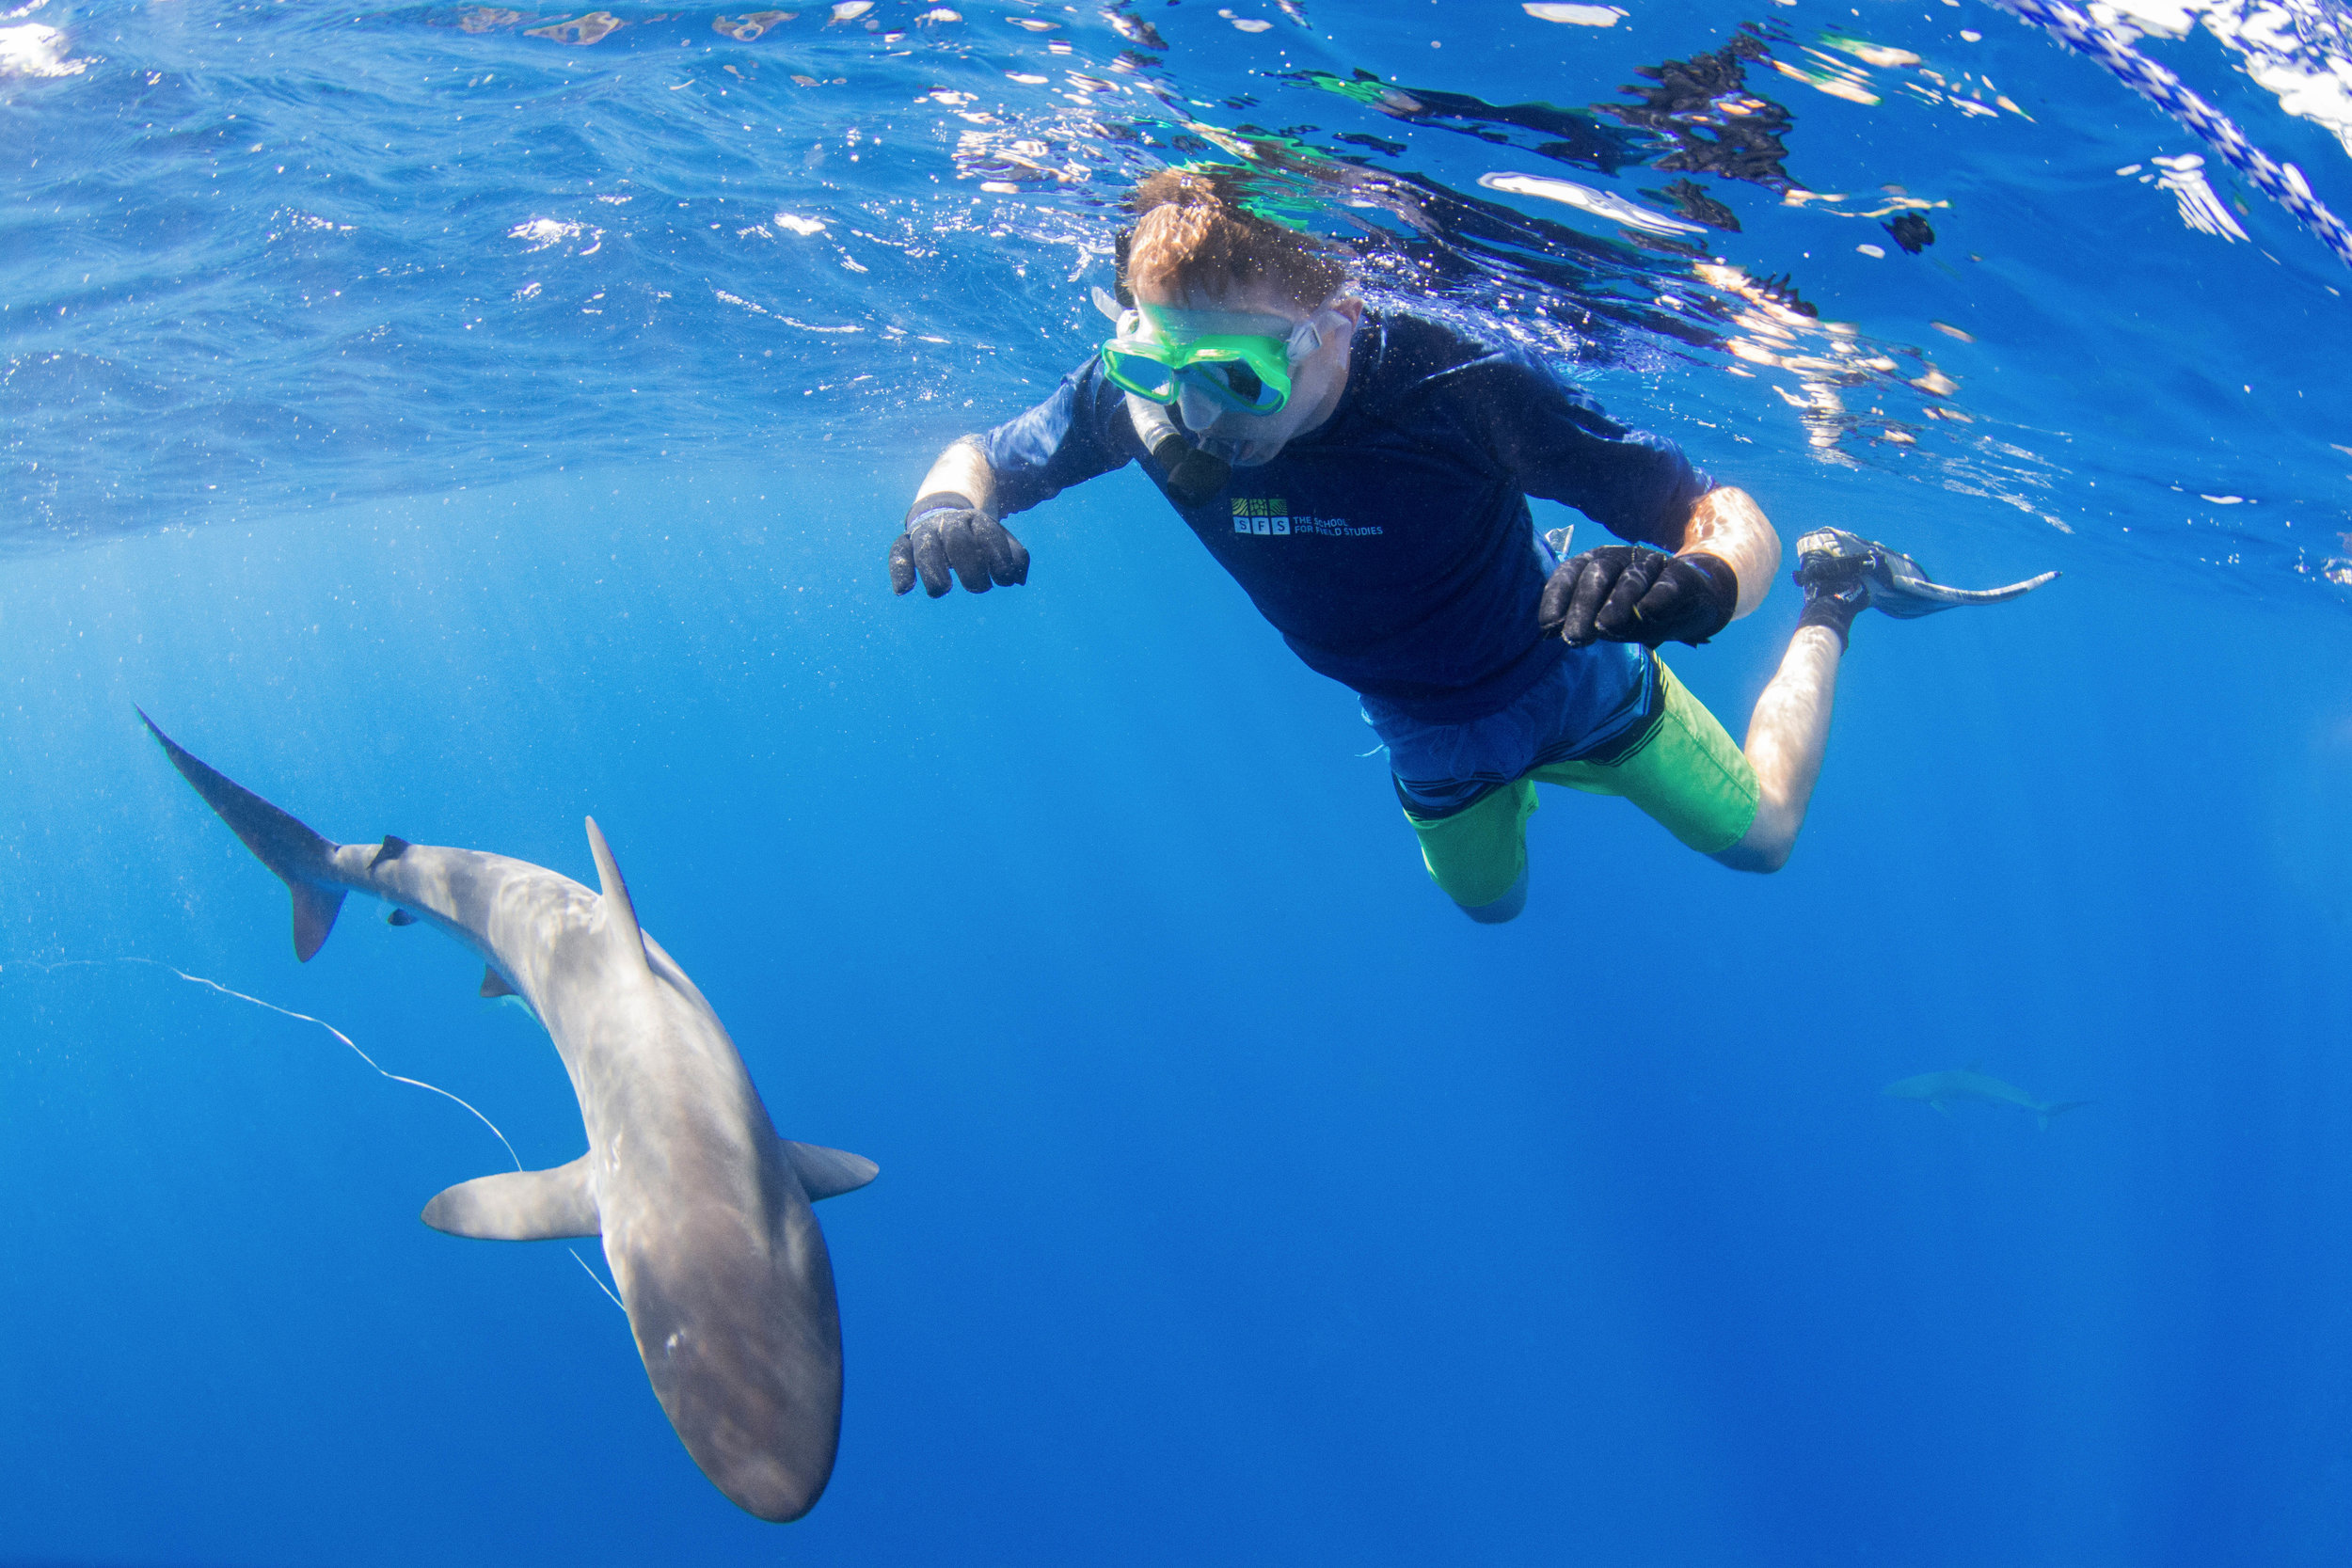 Guest Joe studies a silky shark with old, trailing fishing line- which we safely removed